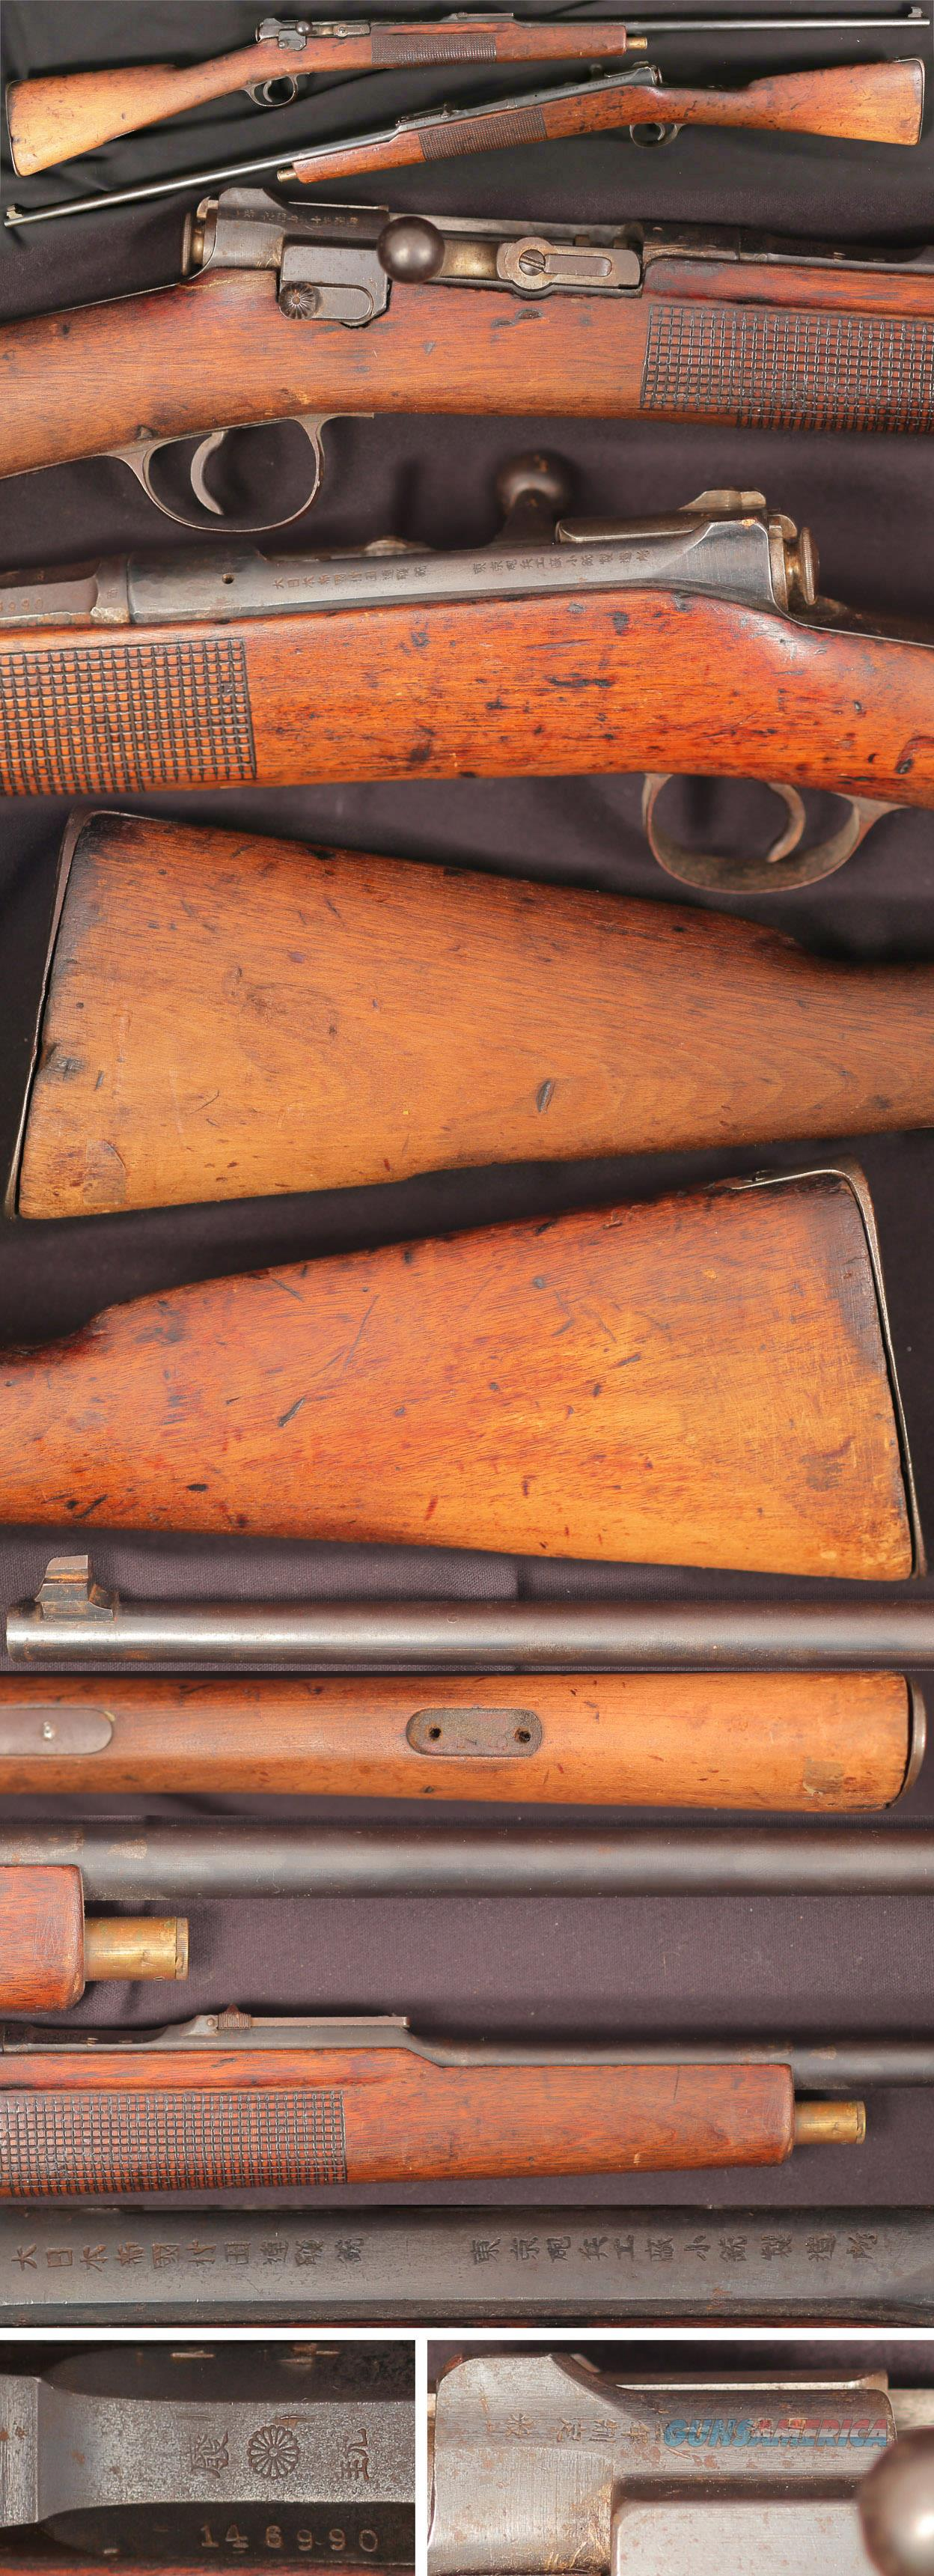 Japanese Murata Type 22 repeating bolt action military rifle  Guns > Rifles > Antique (Pre-1899) Rifles - Ctg. Misc.